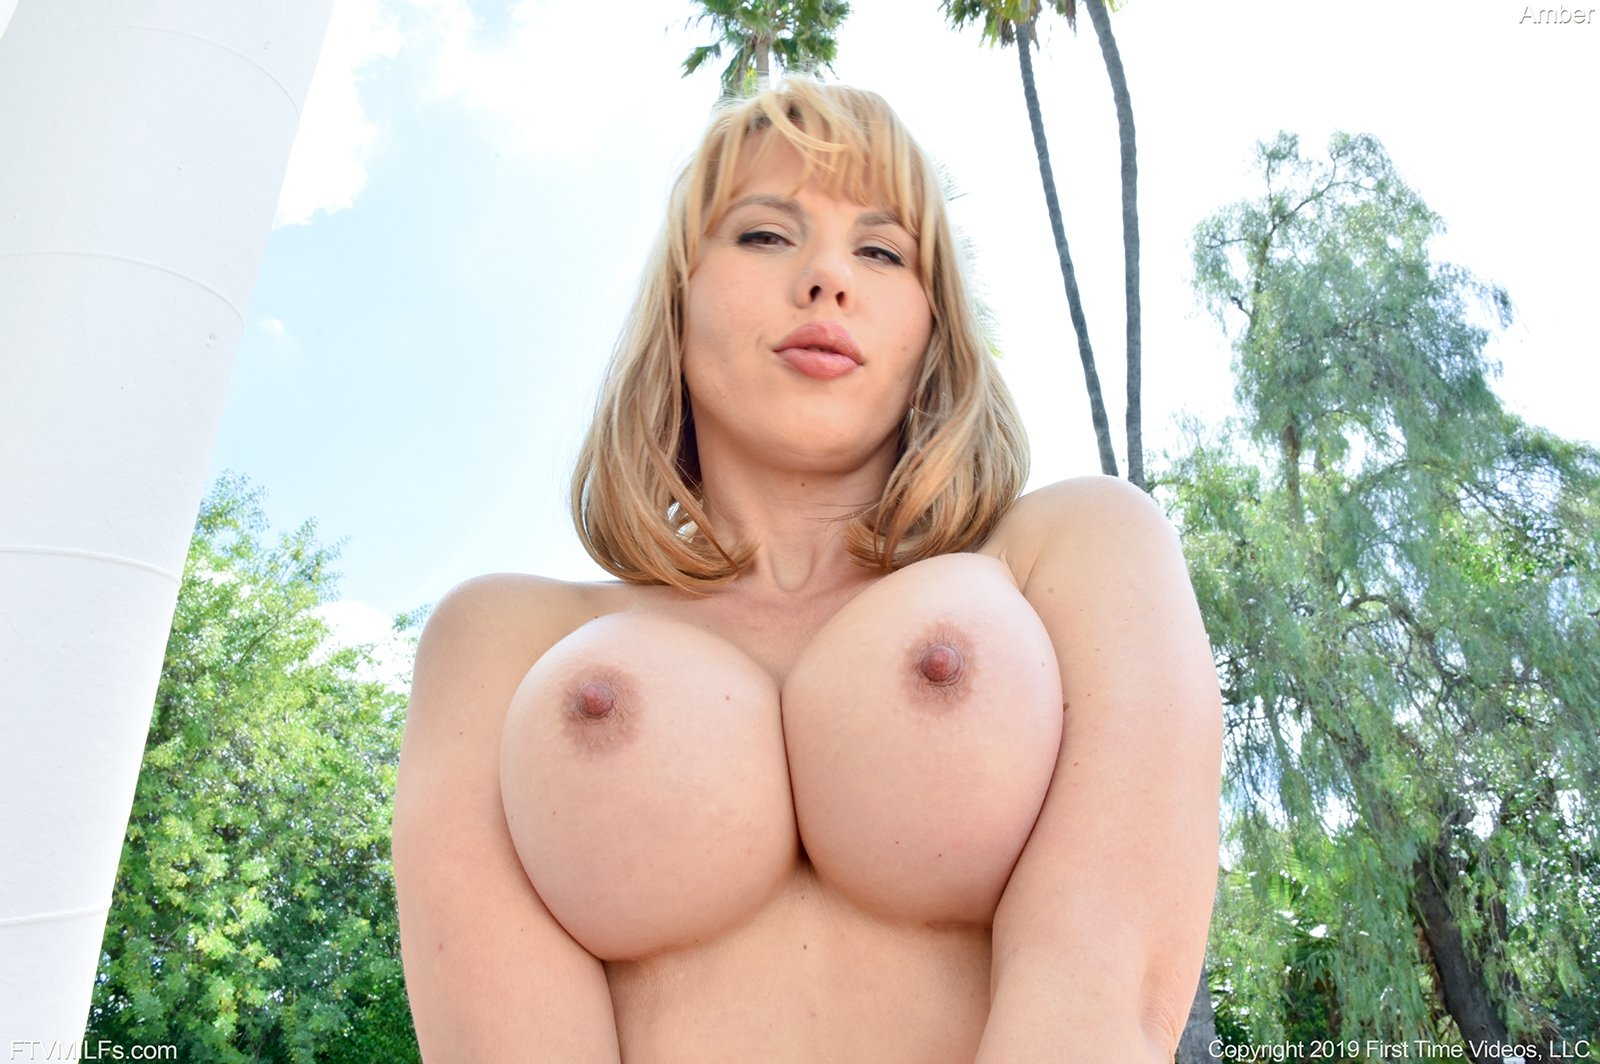 Small tits tube 2019 amateur extra practice tests